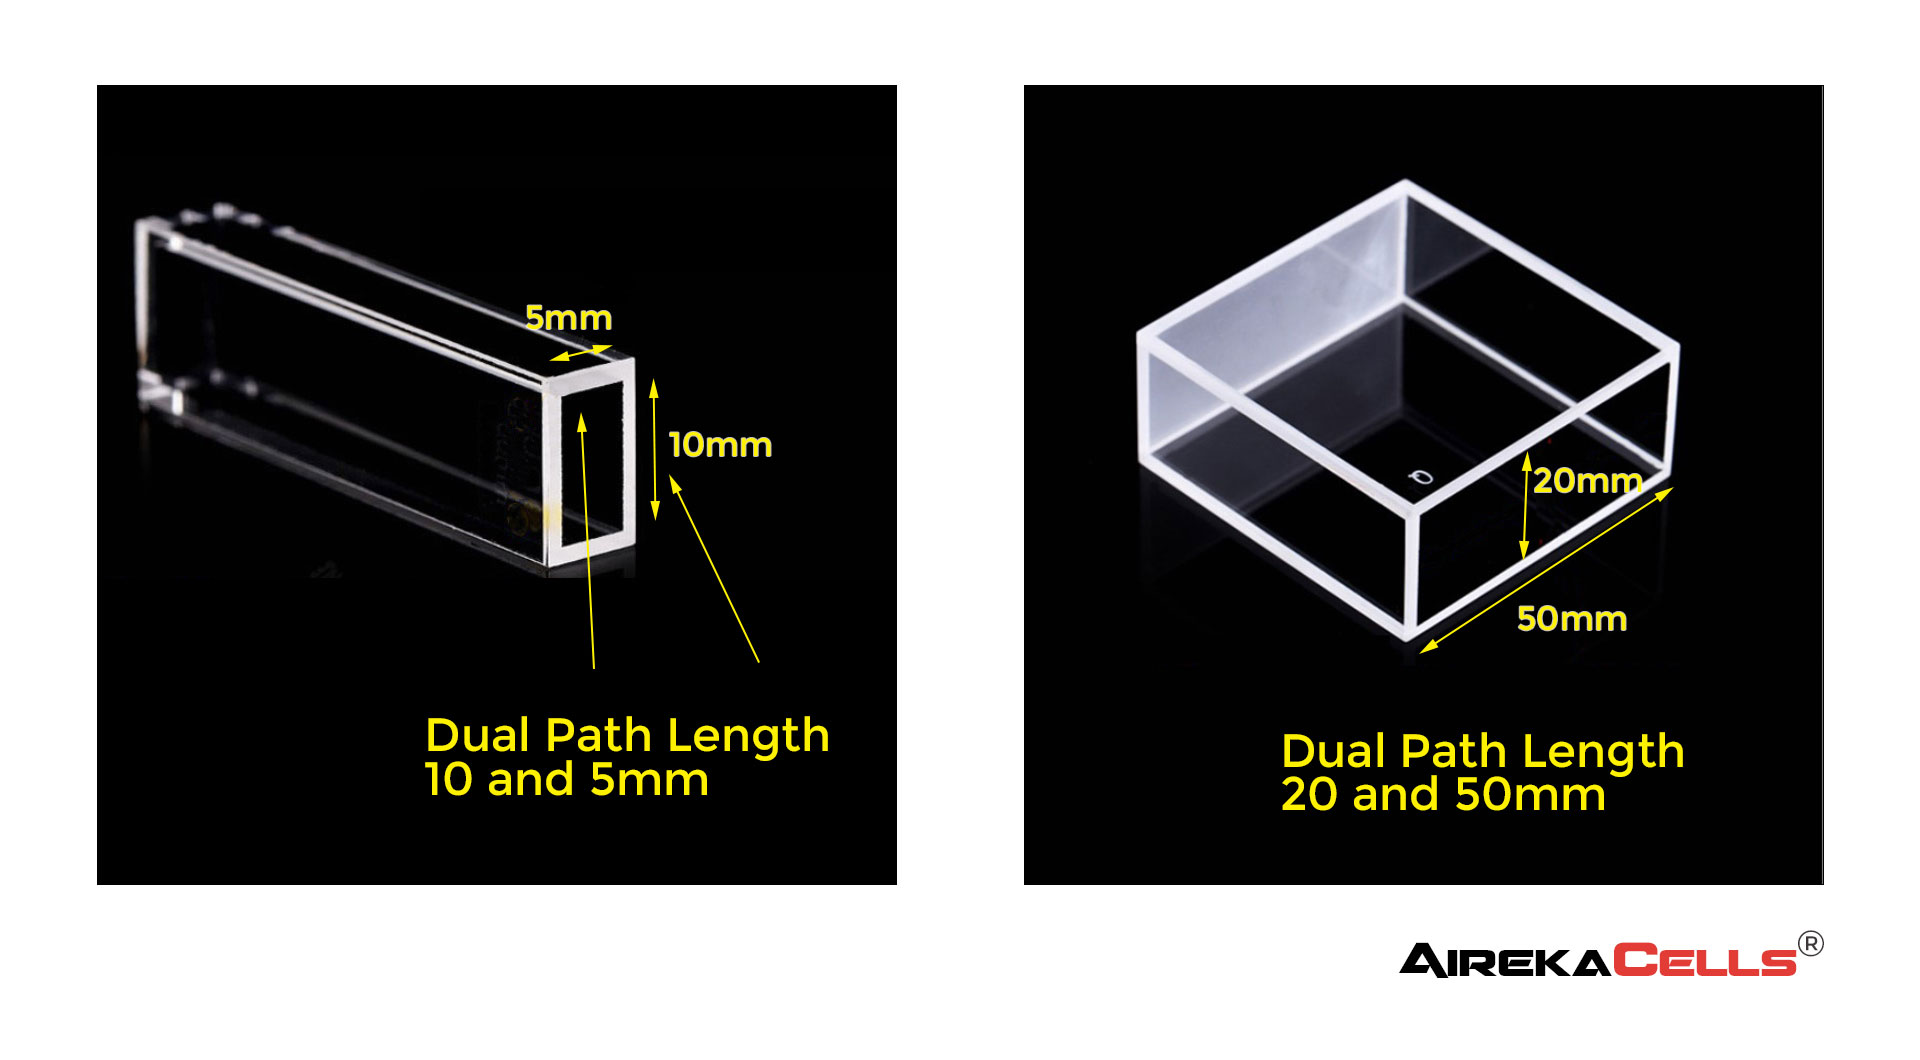 Dual Path Length Cuvette Examples